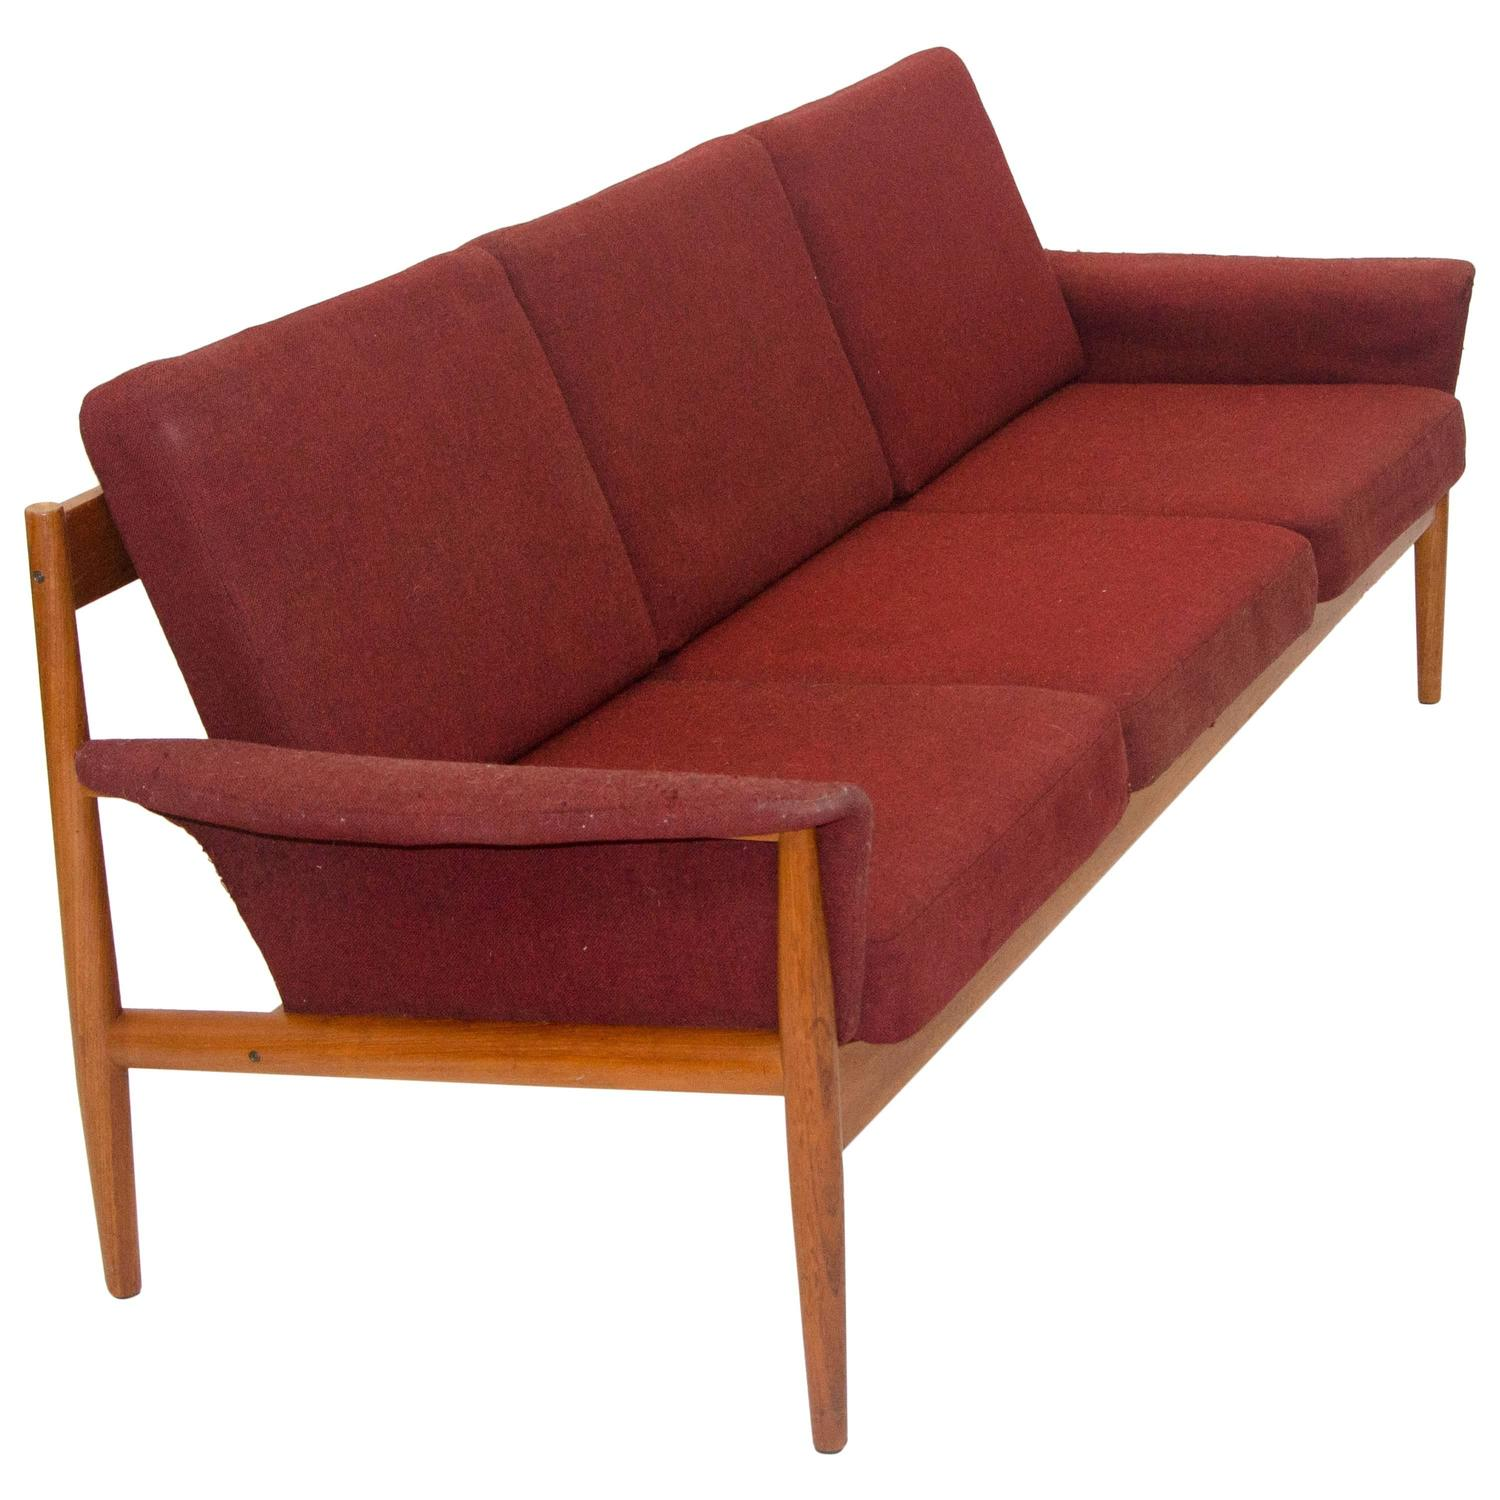 Danish Teak Sofa by Grete Jalk for France and Sons at 1stdibs